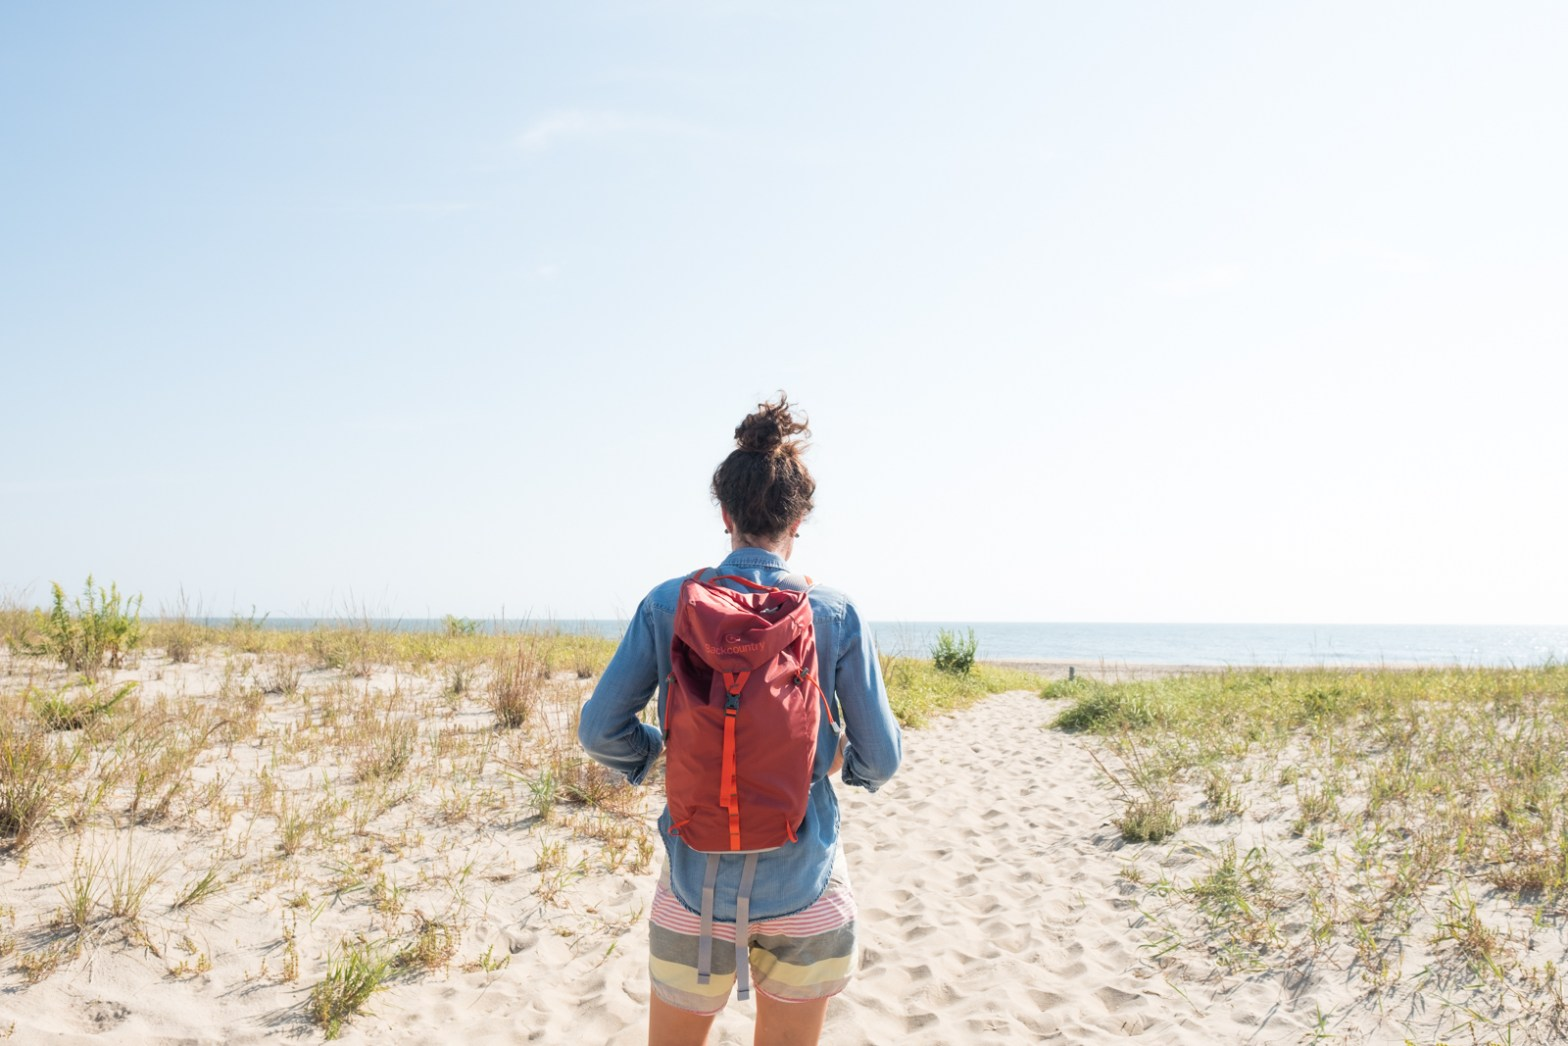 Caroline Whatley at the beach testing out the Backcountry 22L Lightweight pack